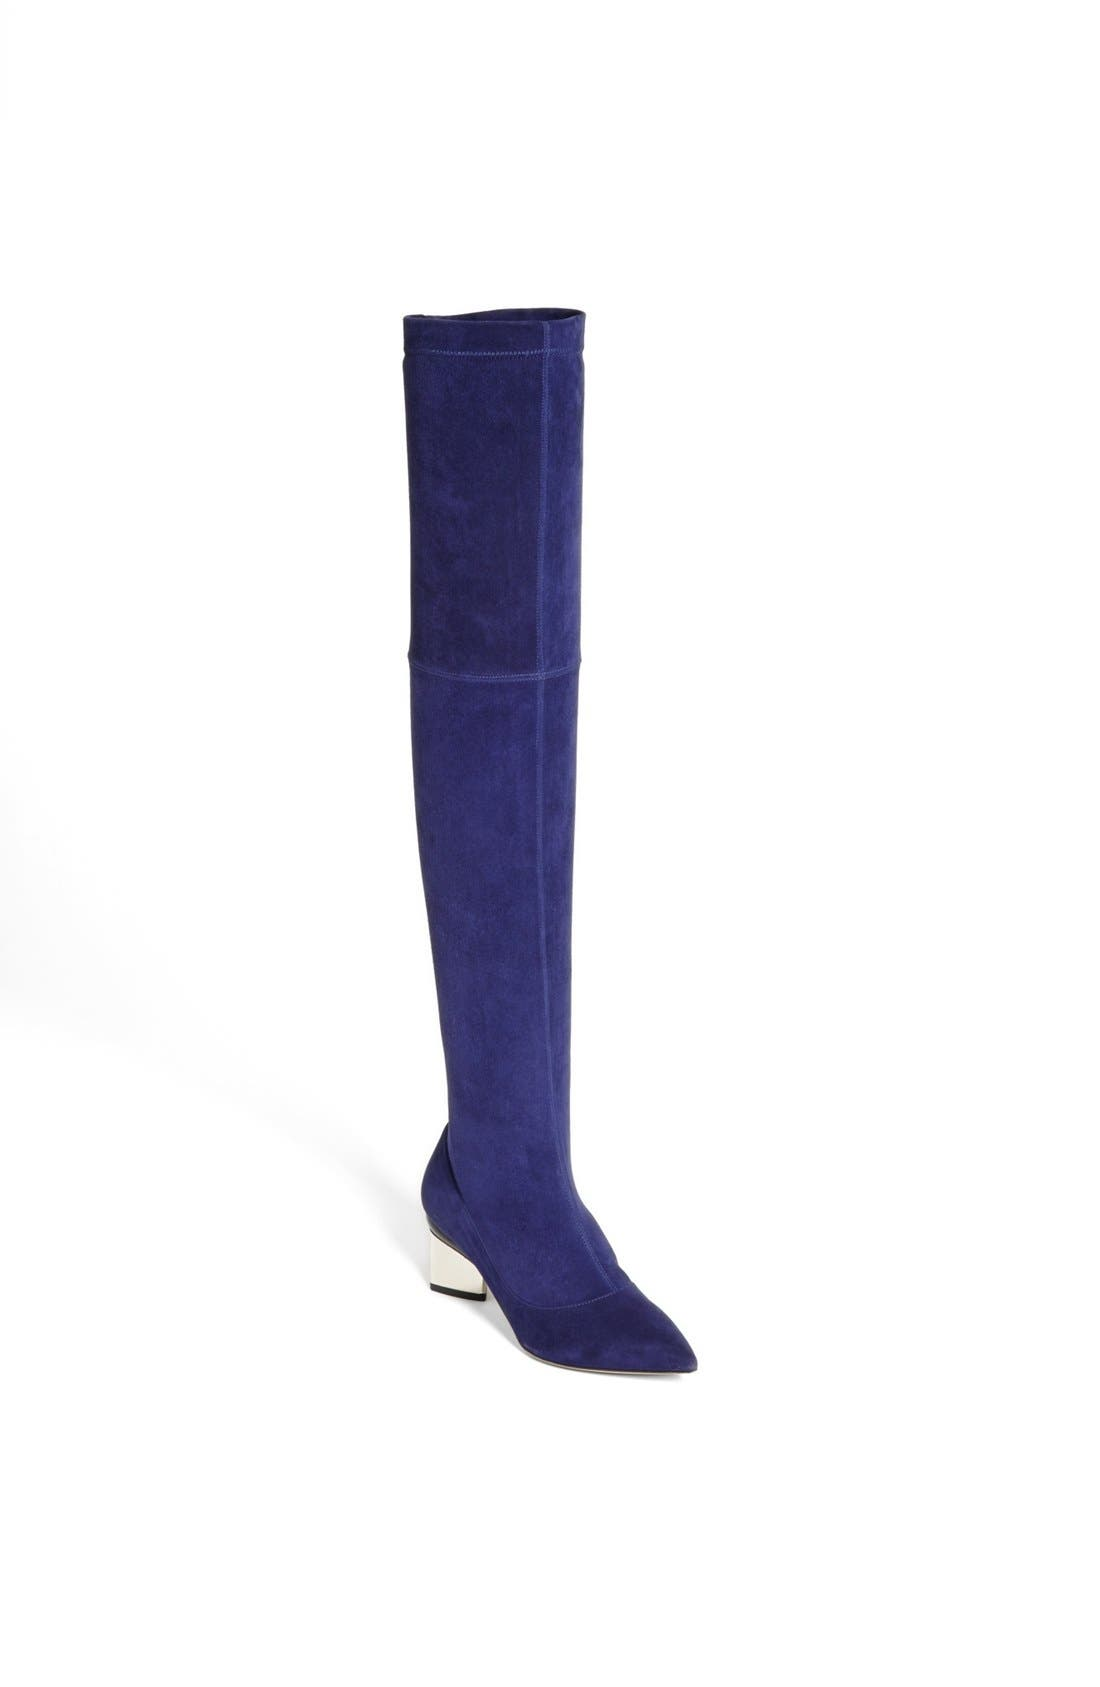 Main Image - Nicholas Kirkwood Suede Over the Knee Boot